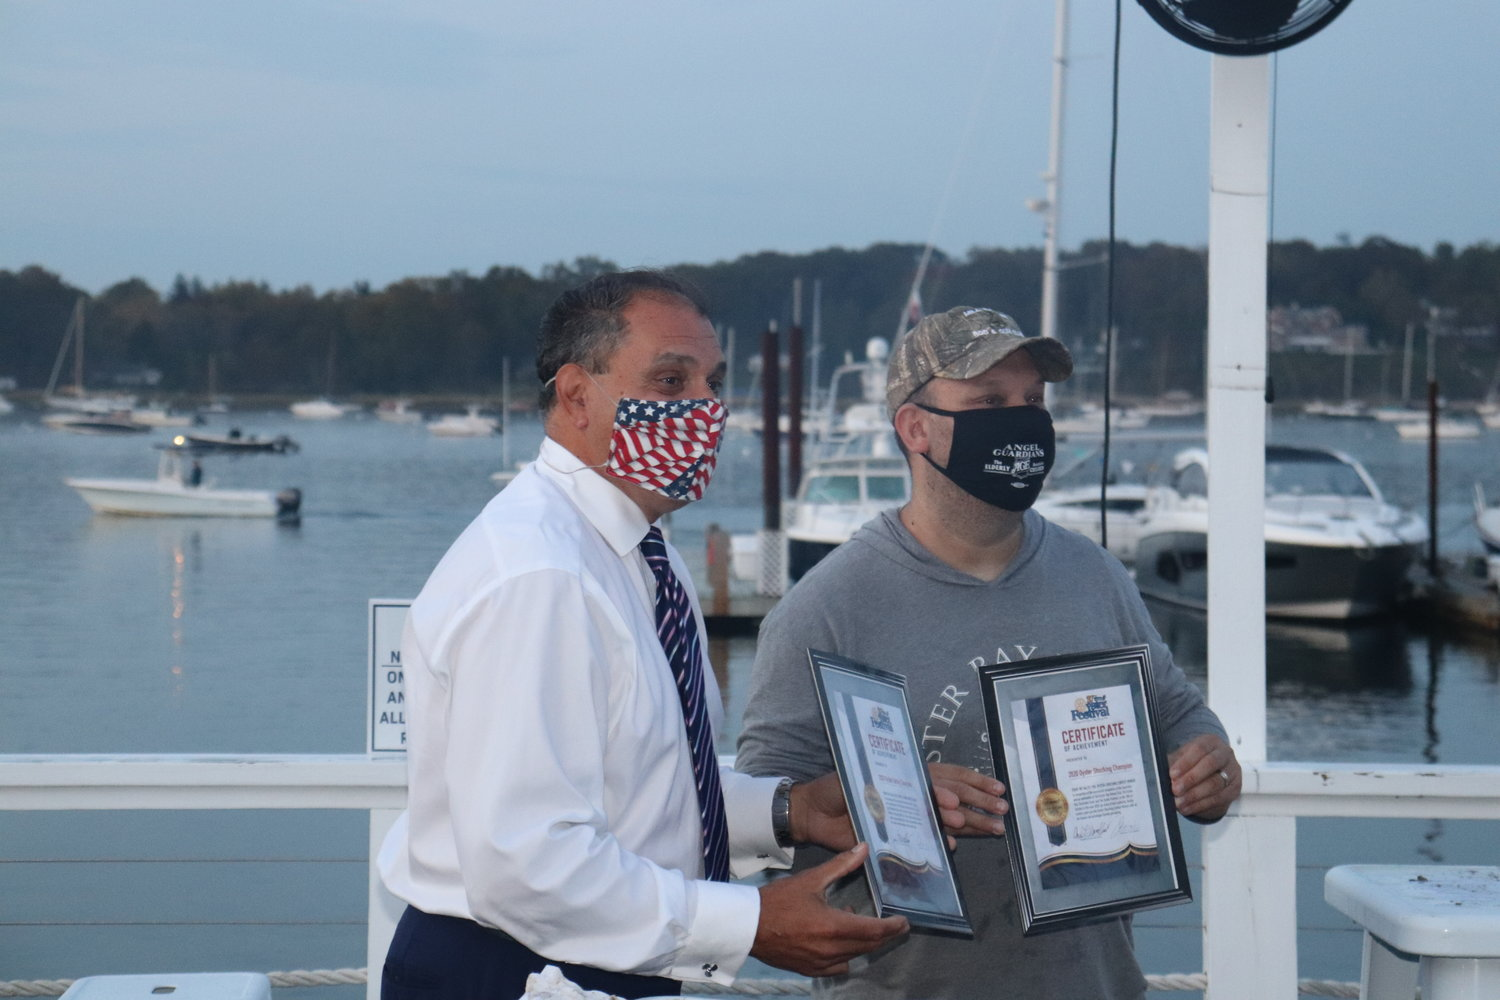 Supervisor Joseph Saladino, left, was the winner of the Oyster-Eating Contest and Oyster Bay resident Brad Launer, the winner of the Oyster-Shucking Contest.